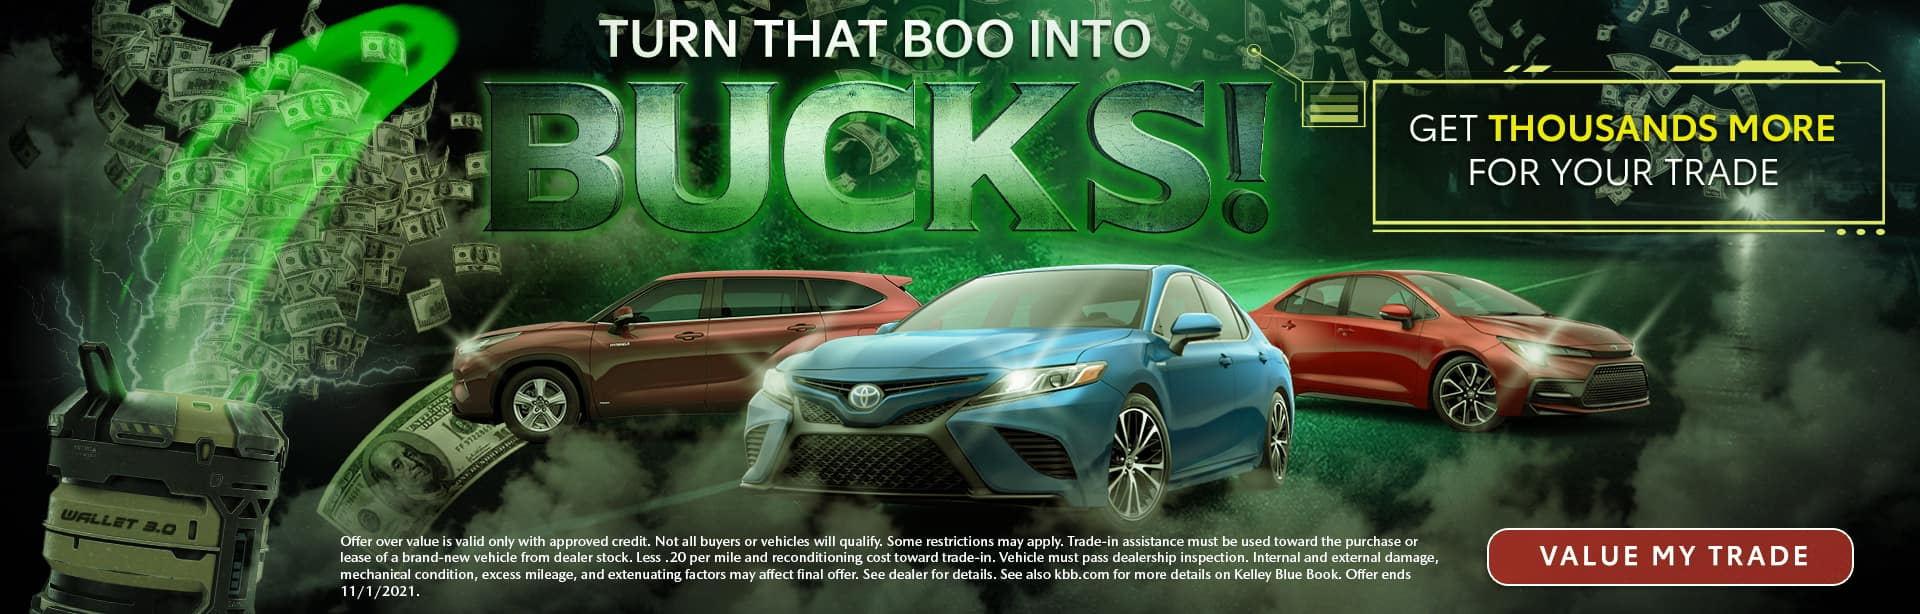 Turn That Boo Into Bucks | Get Thousands More For Your Trade